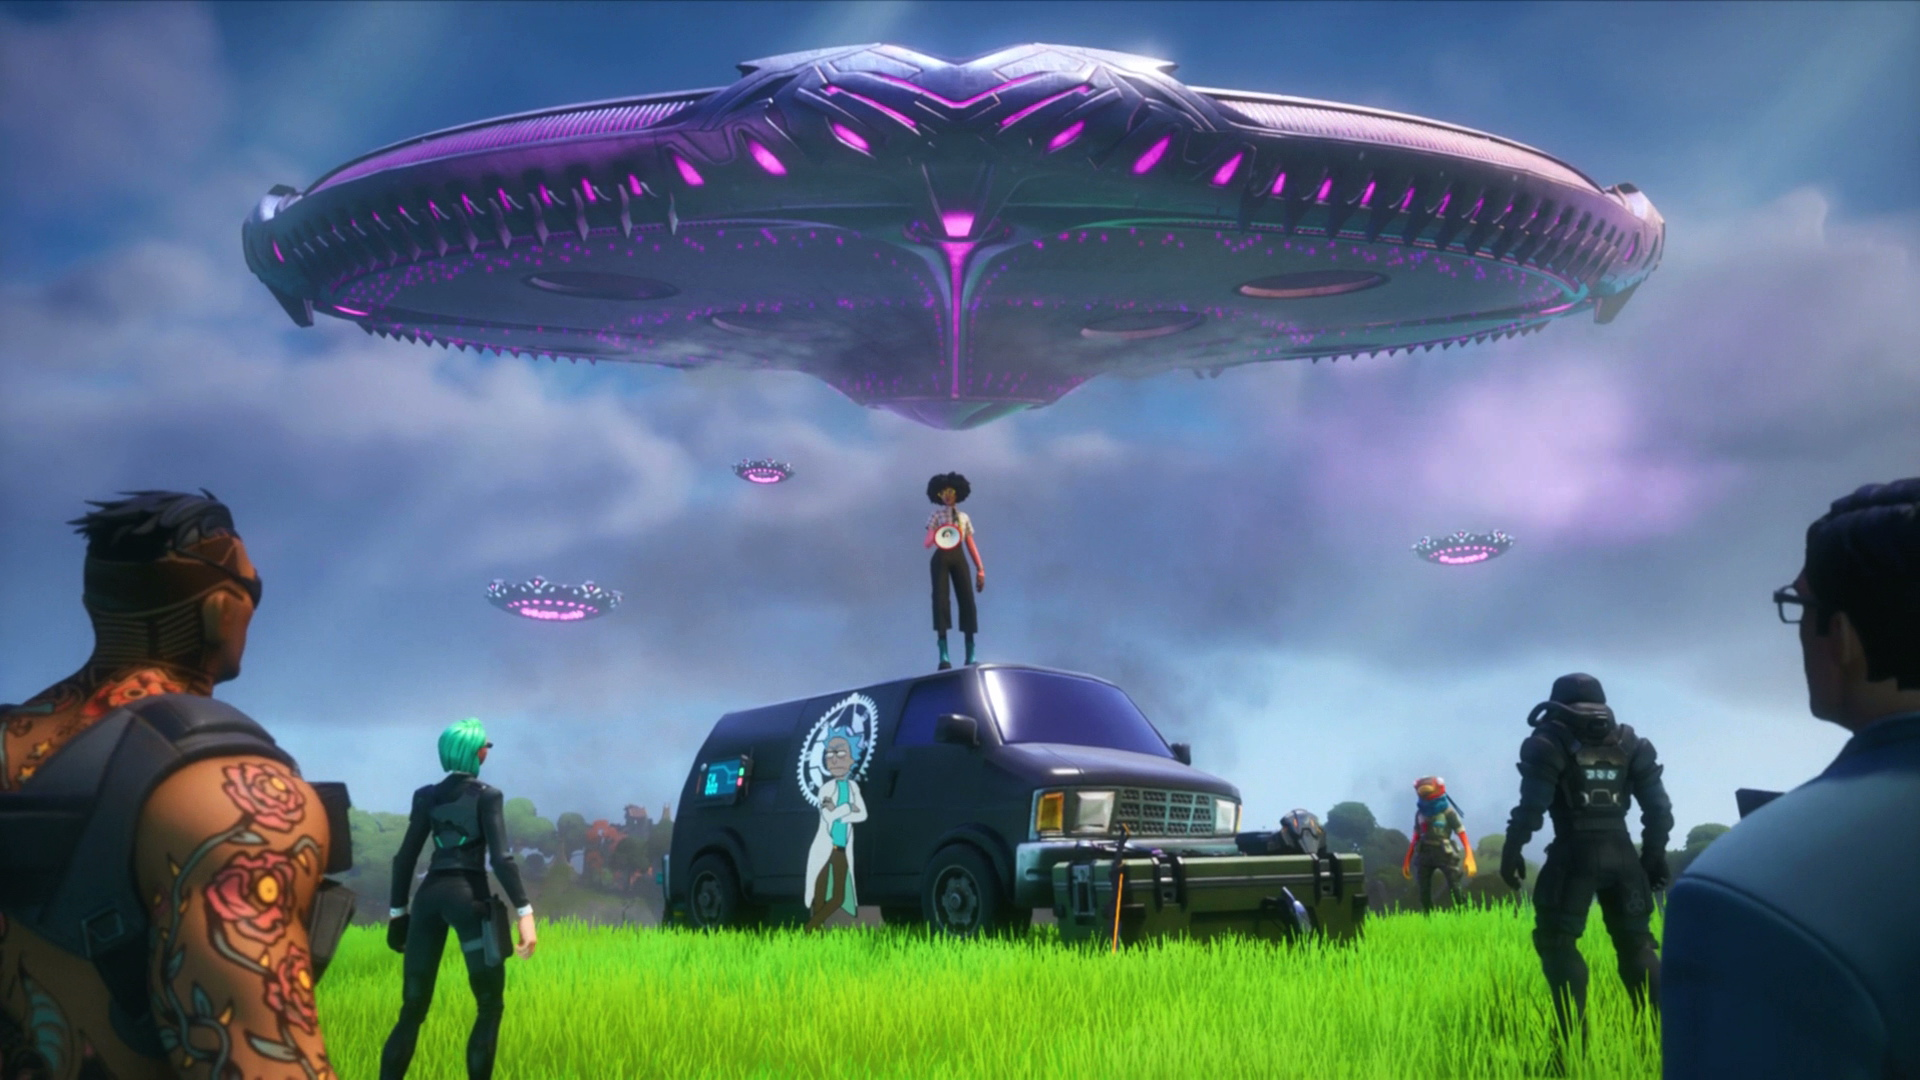 When Does Fortnite Come Out Fortnite Season 7 Biggest Changes What S New And Different With The Fortnite Invasion Gamesradar